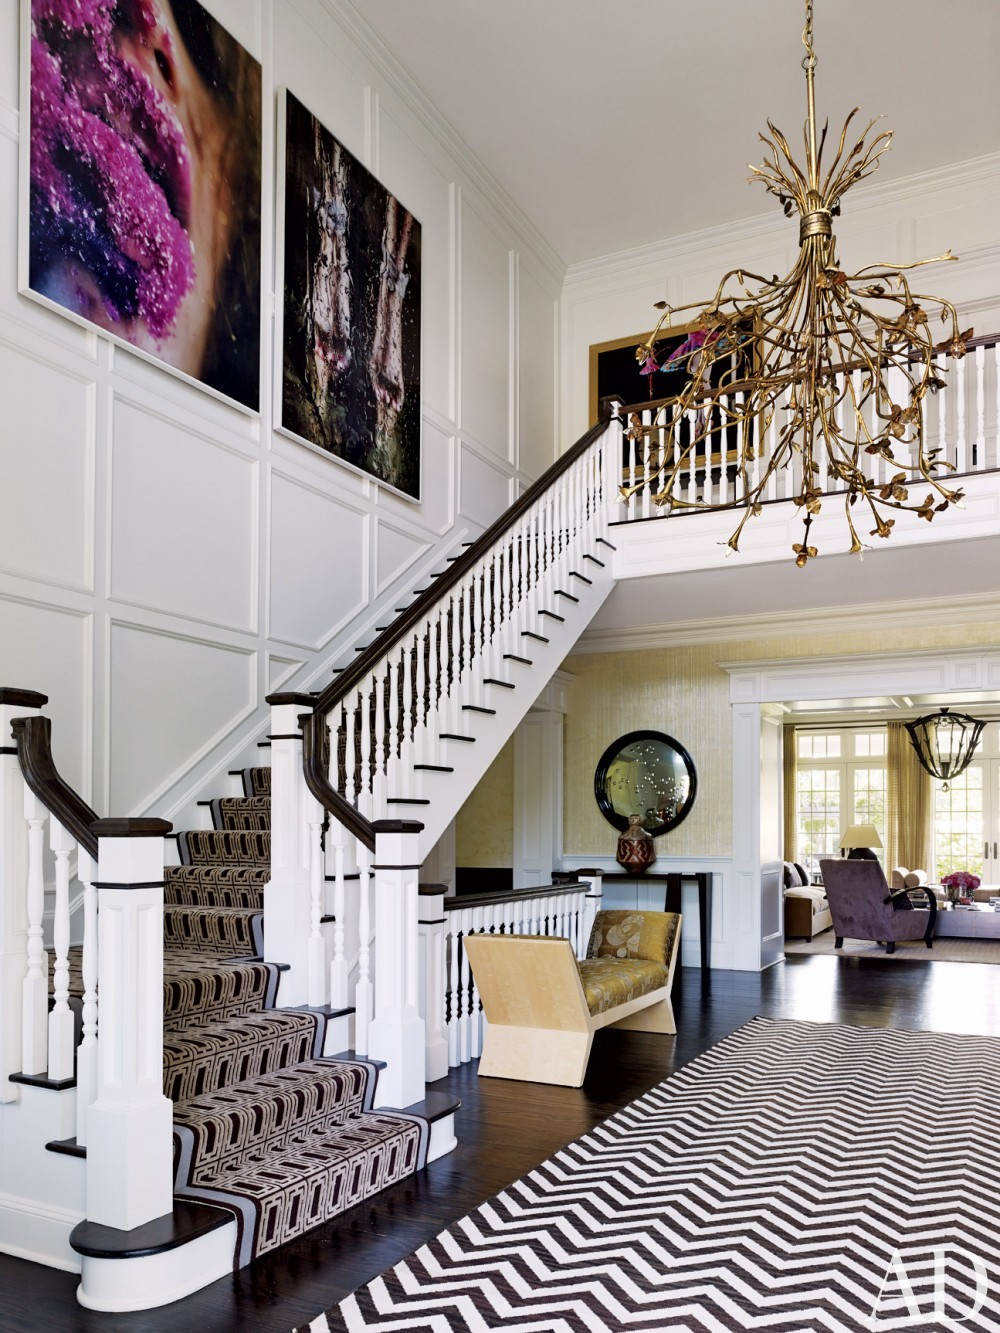 Contemporary staircase by Juan Montoya Design in Southampton, NY